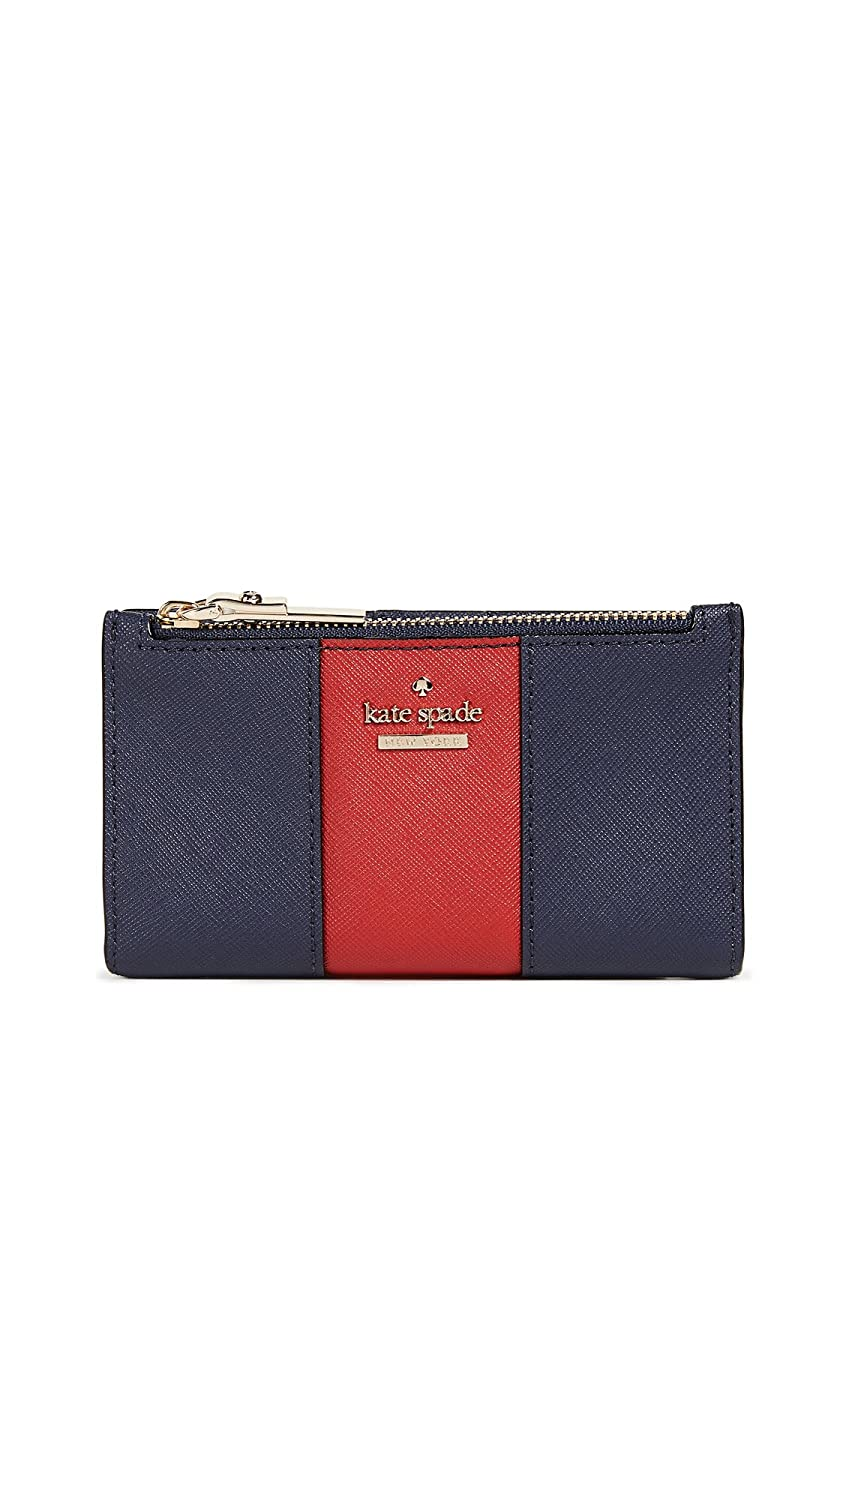 Kate Spade New York Women's Cameron Street Mikey Wallet with Racing Stripe Blazer Blue/Heirloom Red One Size Kate Spade-Handbags/Other Access.